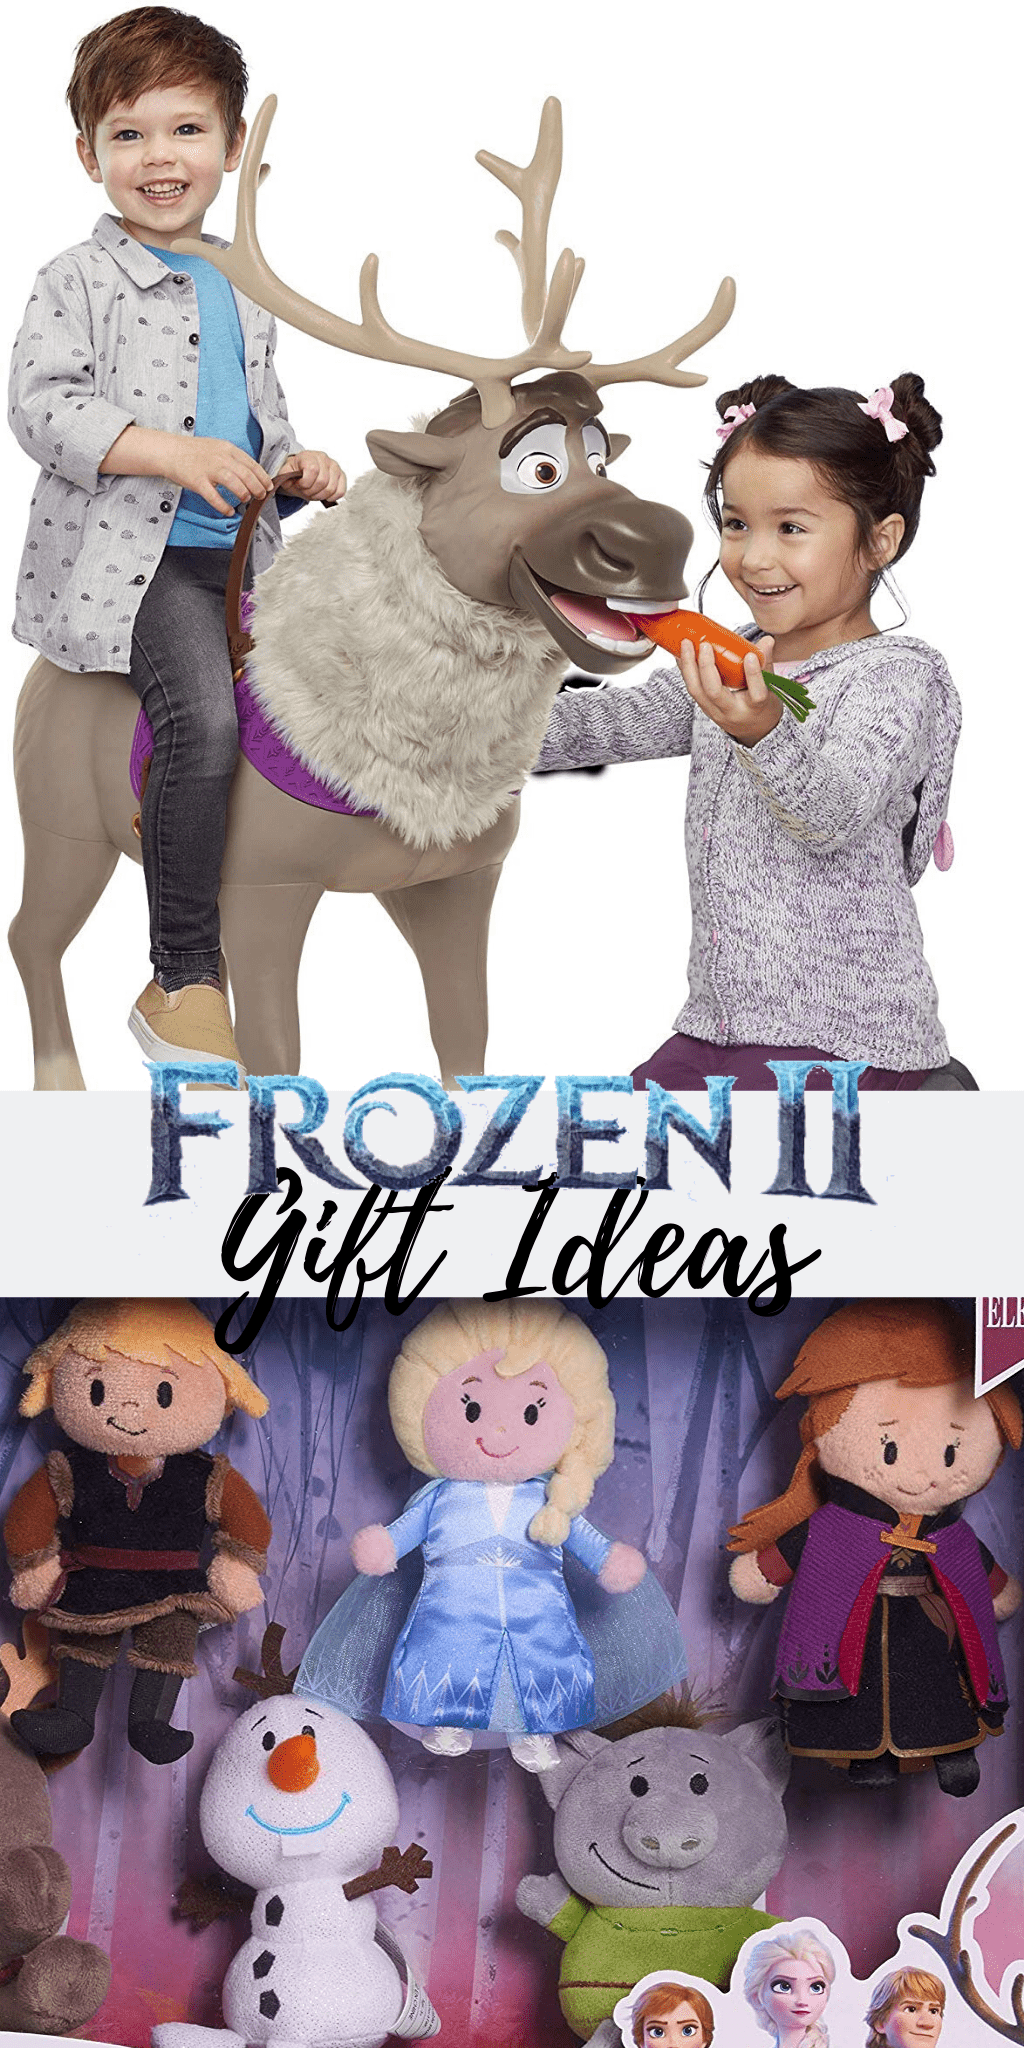 Frozen 2 is in theaters and is going to be at the top of the kids gift list. Check out the FROZEN 2 gift ideas for the littles.